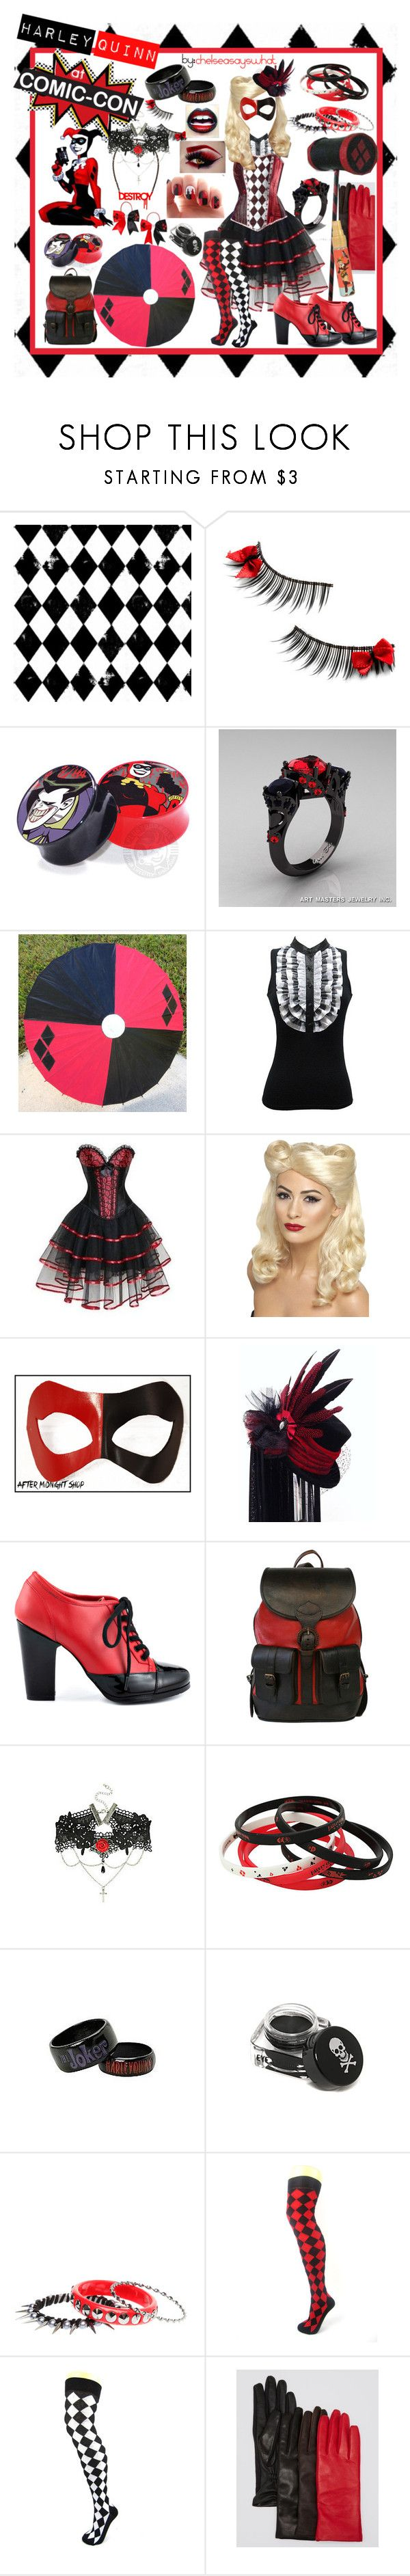 """Harley Quinn - Comic-con Outfit"" by chelseasayswhat ❤ liked on Polyvore featuring Topshop, Hot Topic, Dolce Cabo, Masquerade, Kelsi Dagger Brooklyn, Beara Beara, U